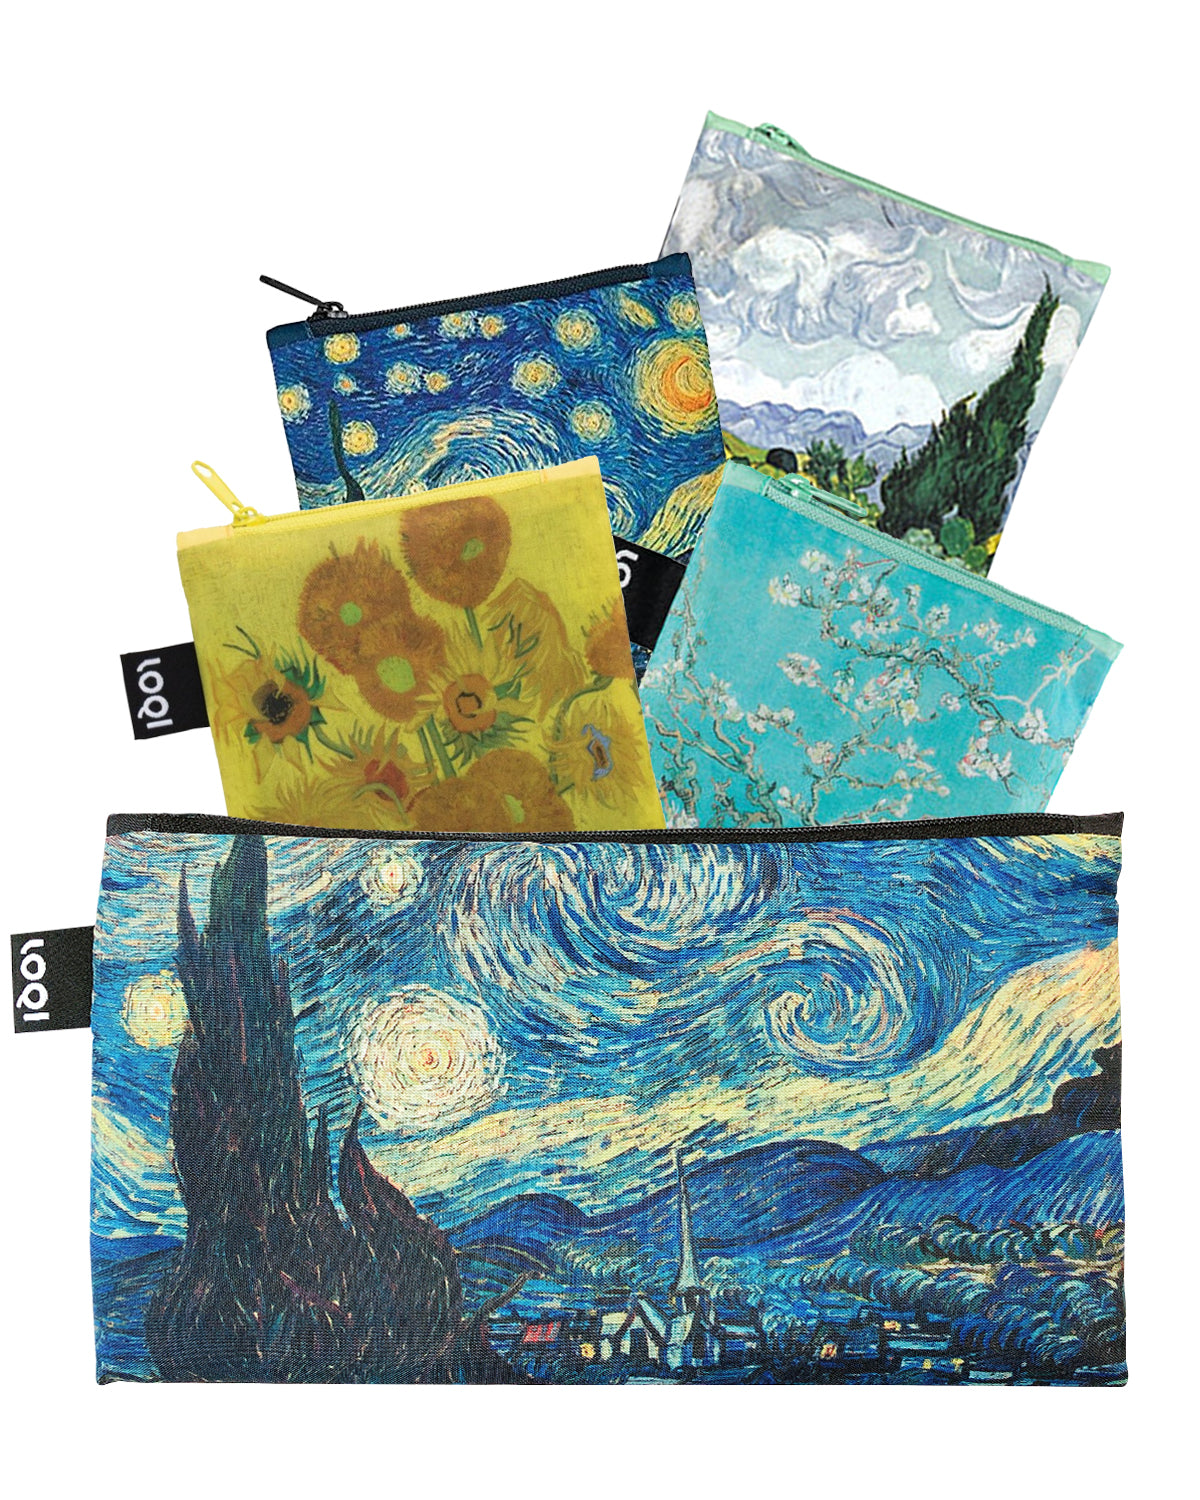 LOQI Museum Collection Pouch Set of 4 Reusable Bags